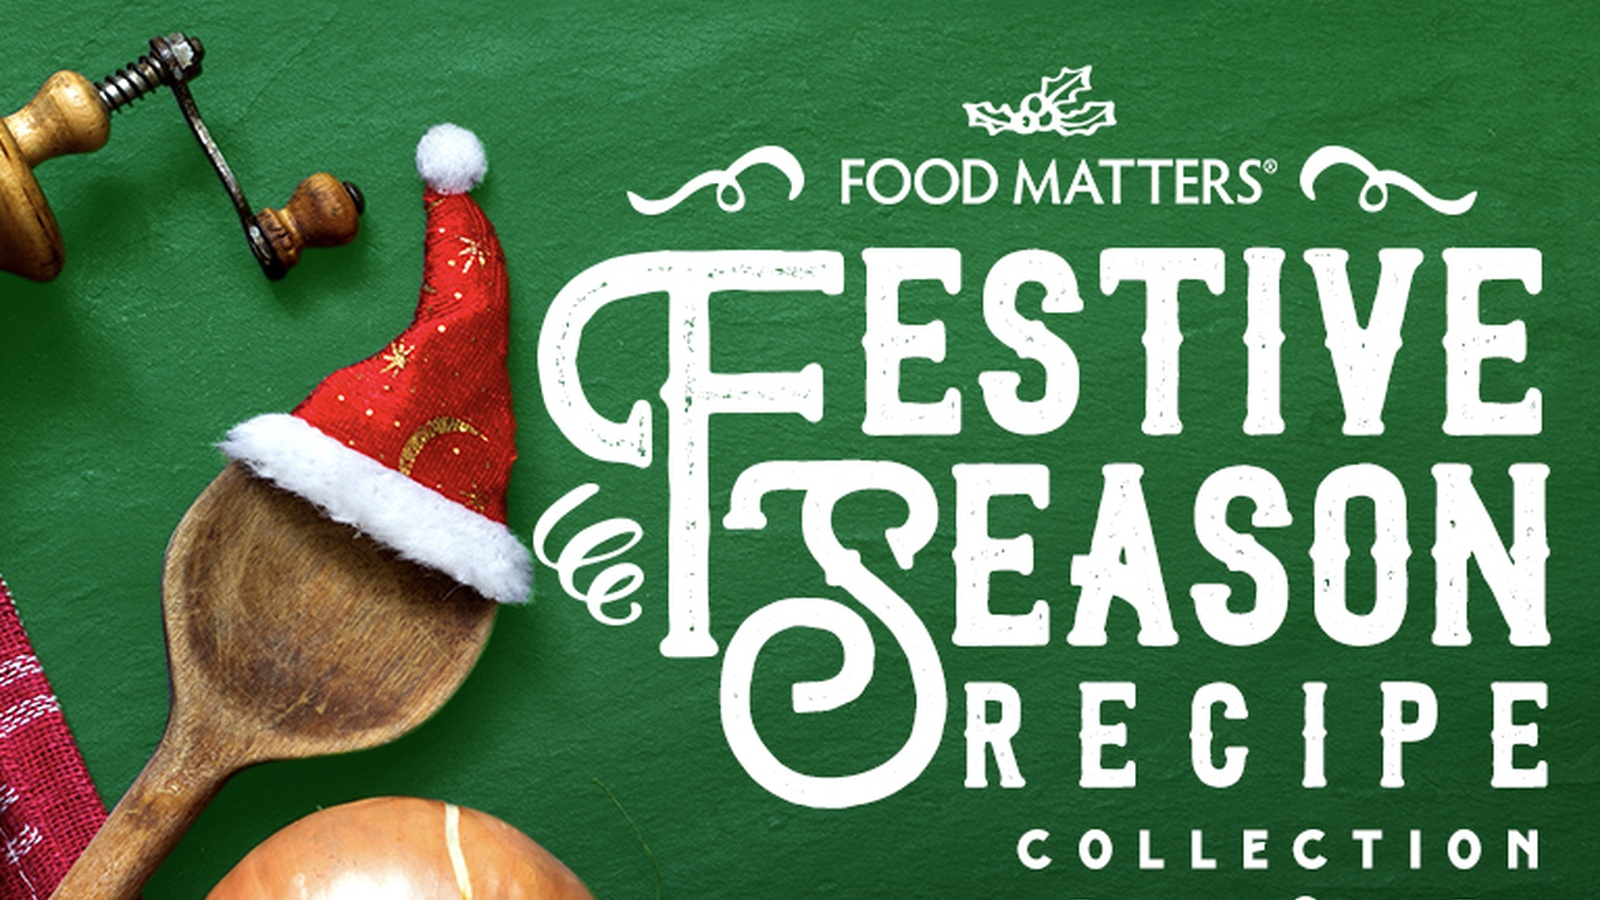 Festive Season Recipe Inspiration with Food Matters TV